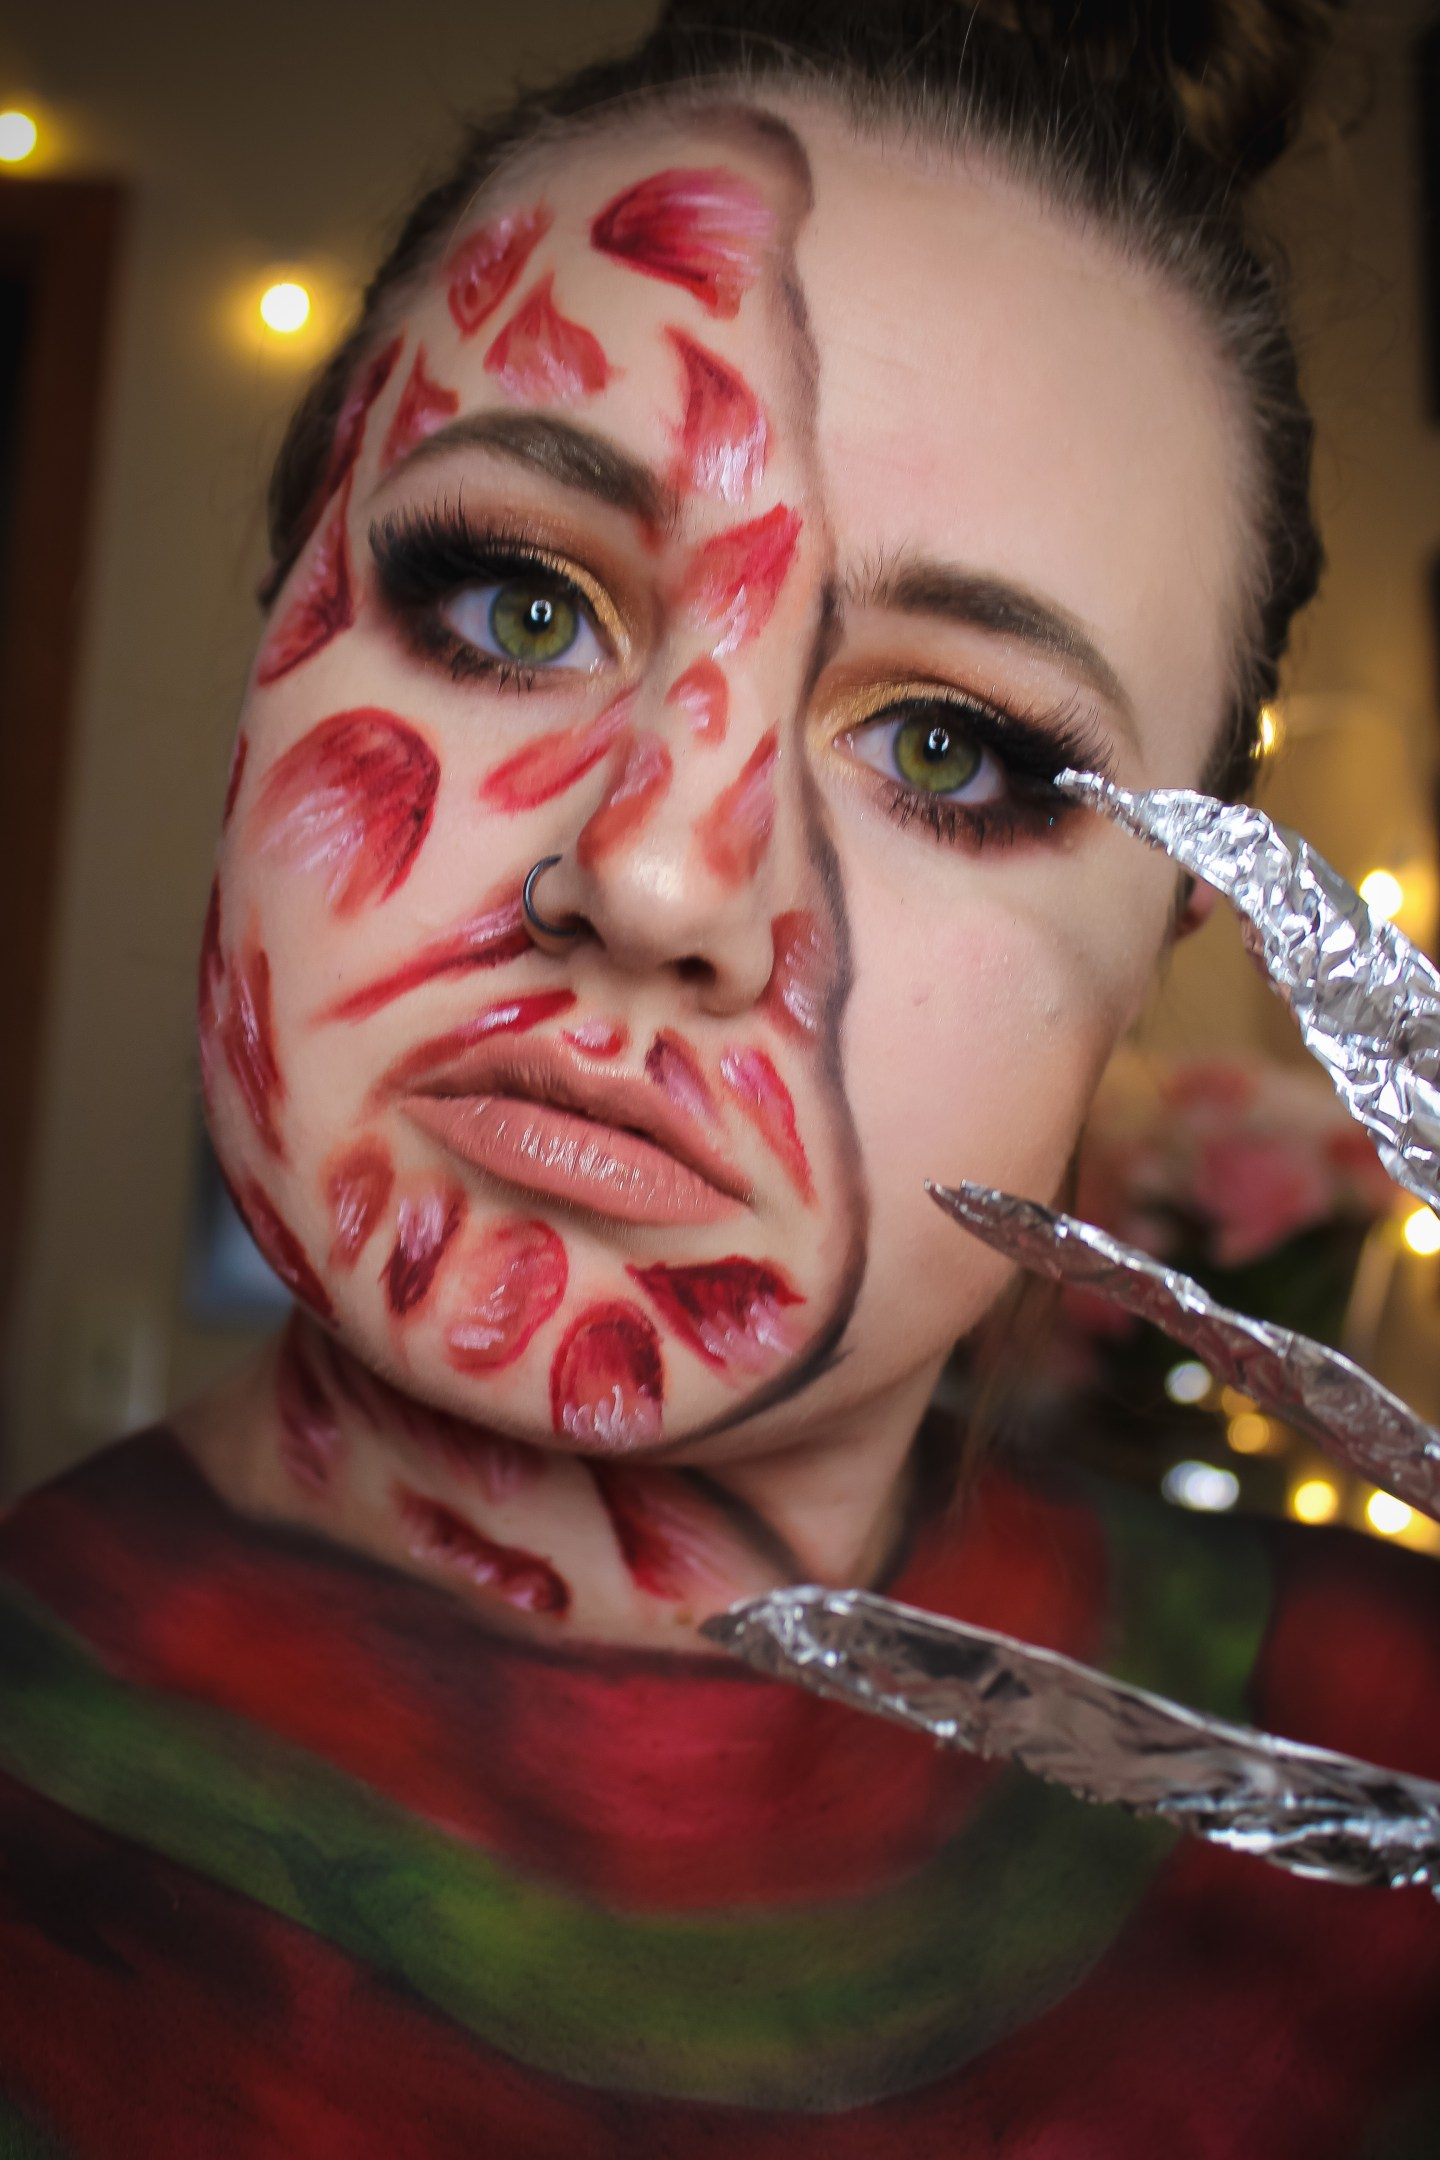 Why are you Screamin'? Freddy Krueger from A Nightmare on Elm Street Makeup Look 8